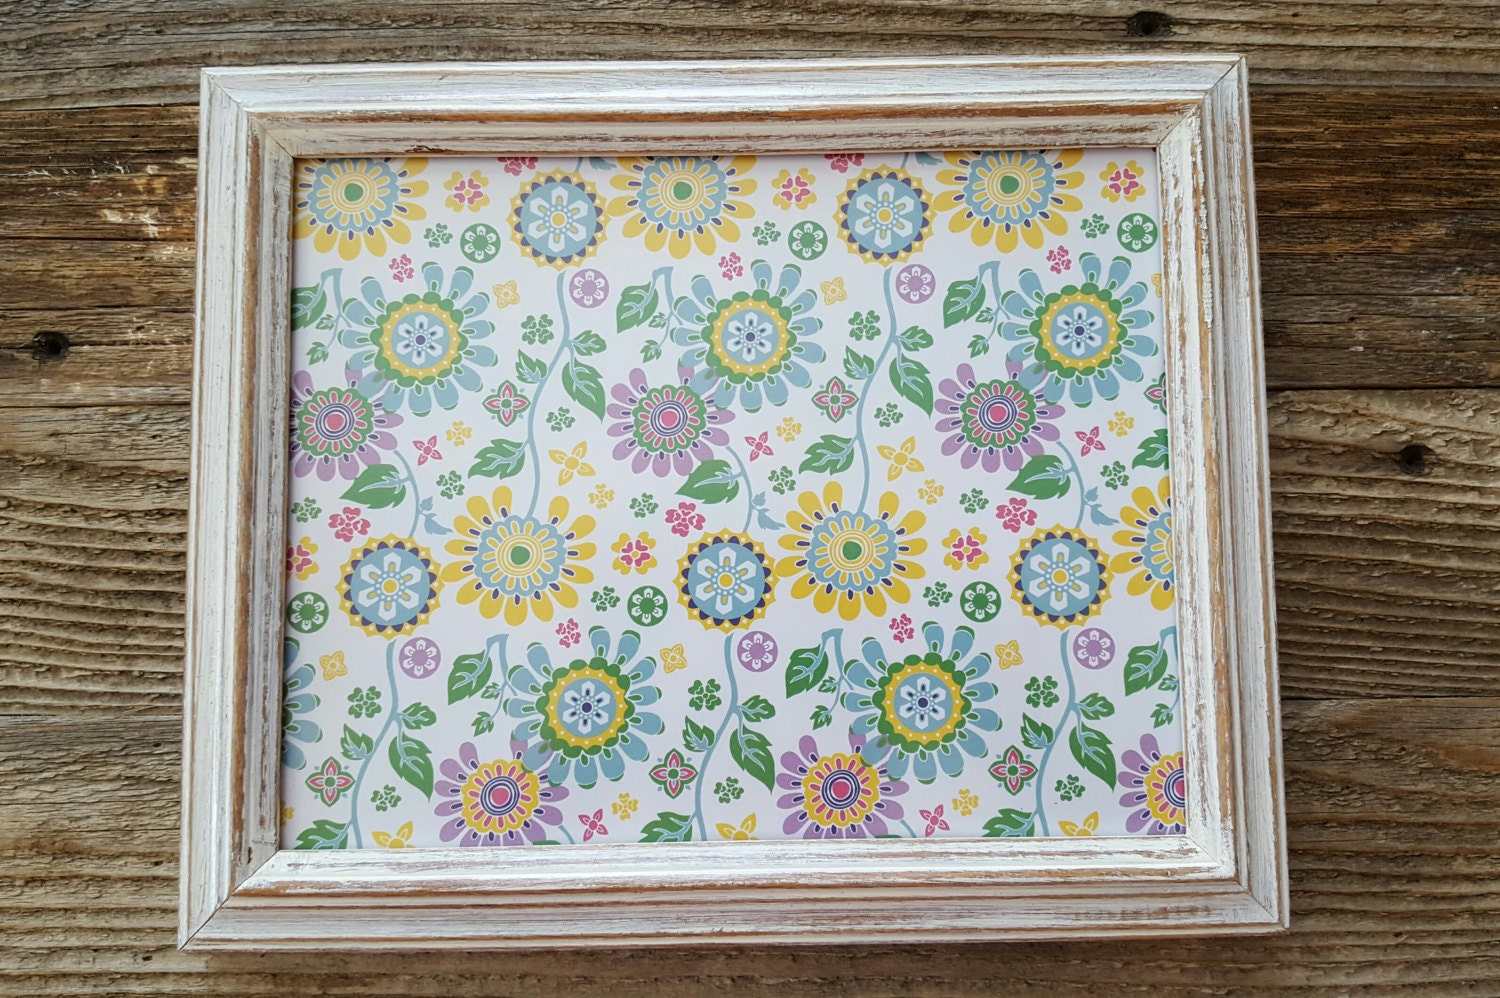 8x10 White Wash Distressed Frame From Scrappyhappyshay On